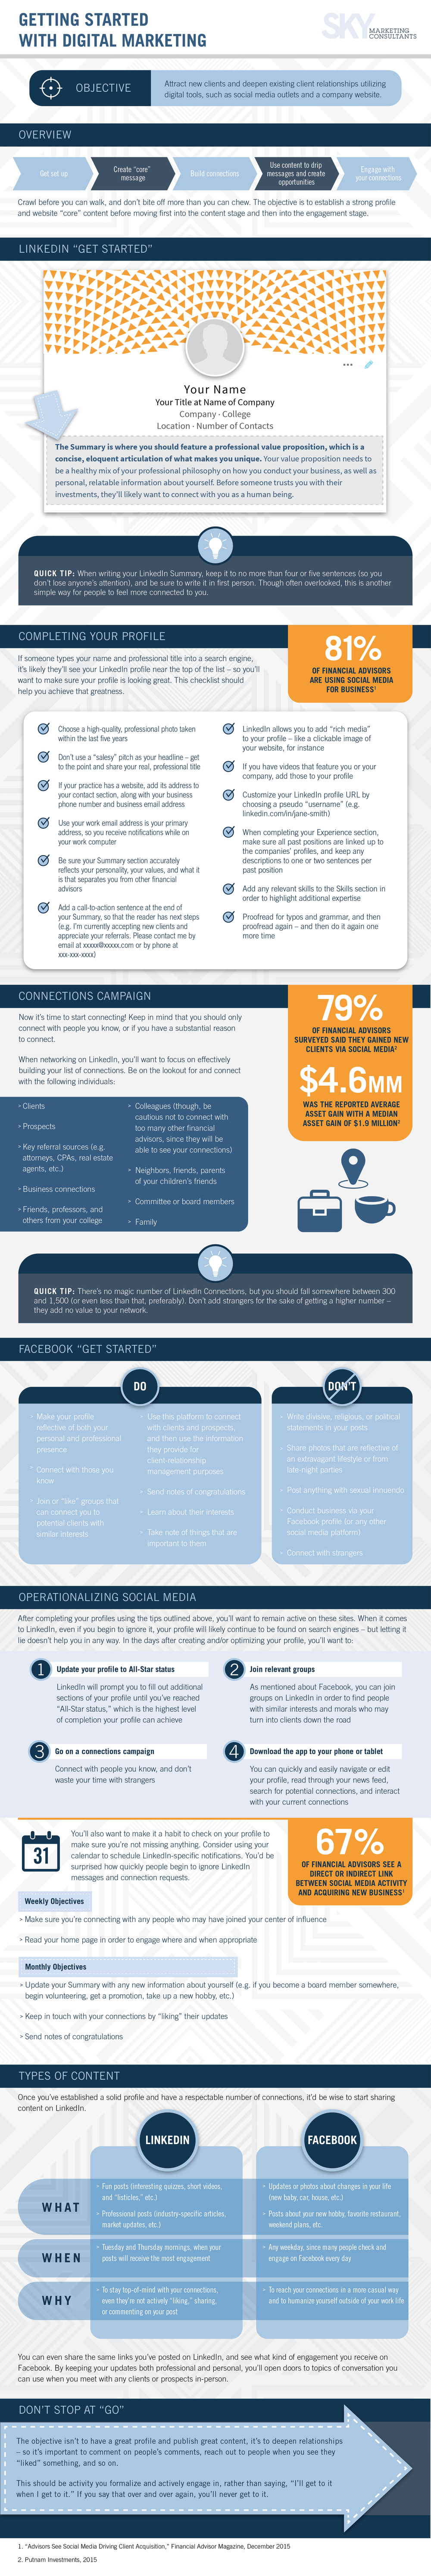 SKY_digitial marketing_infographic 1.png